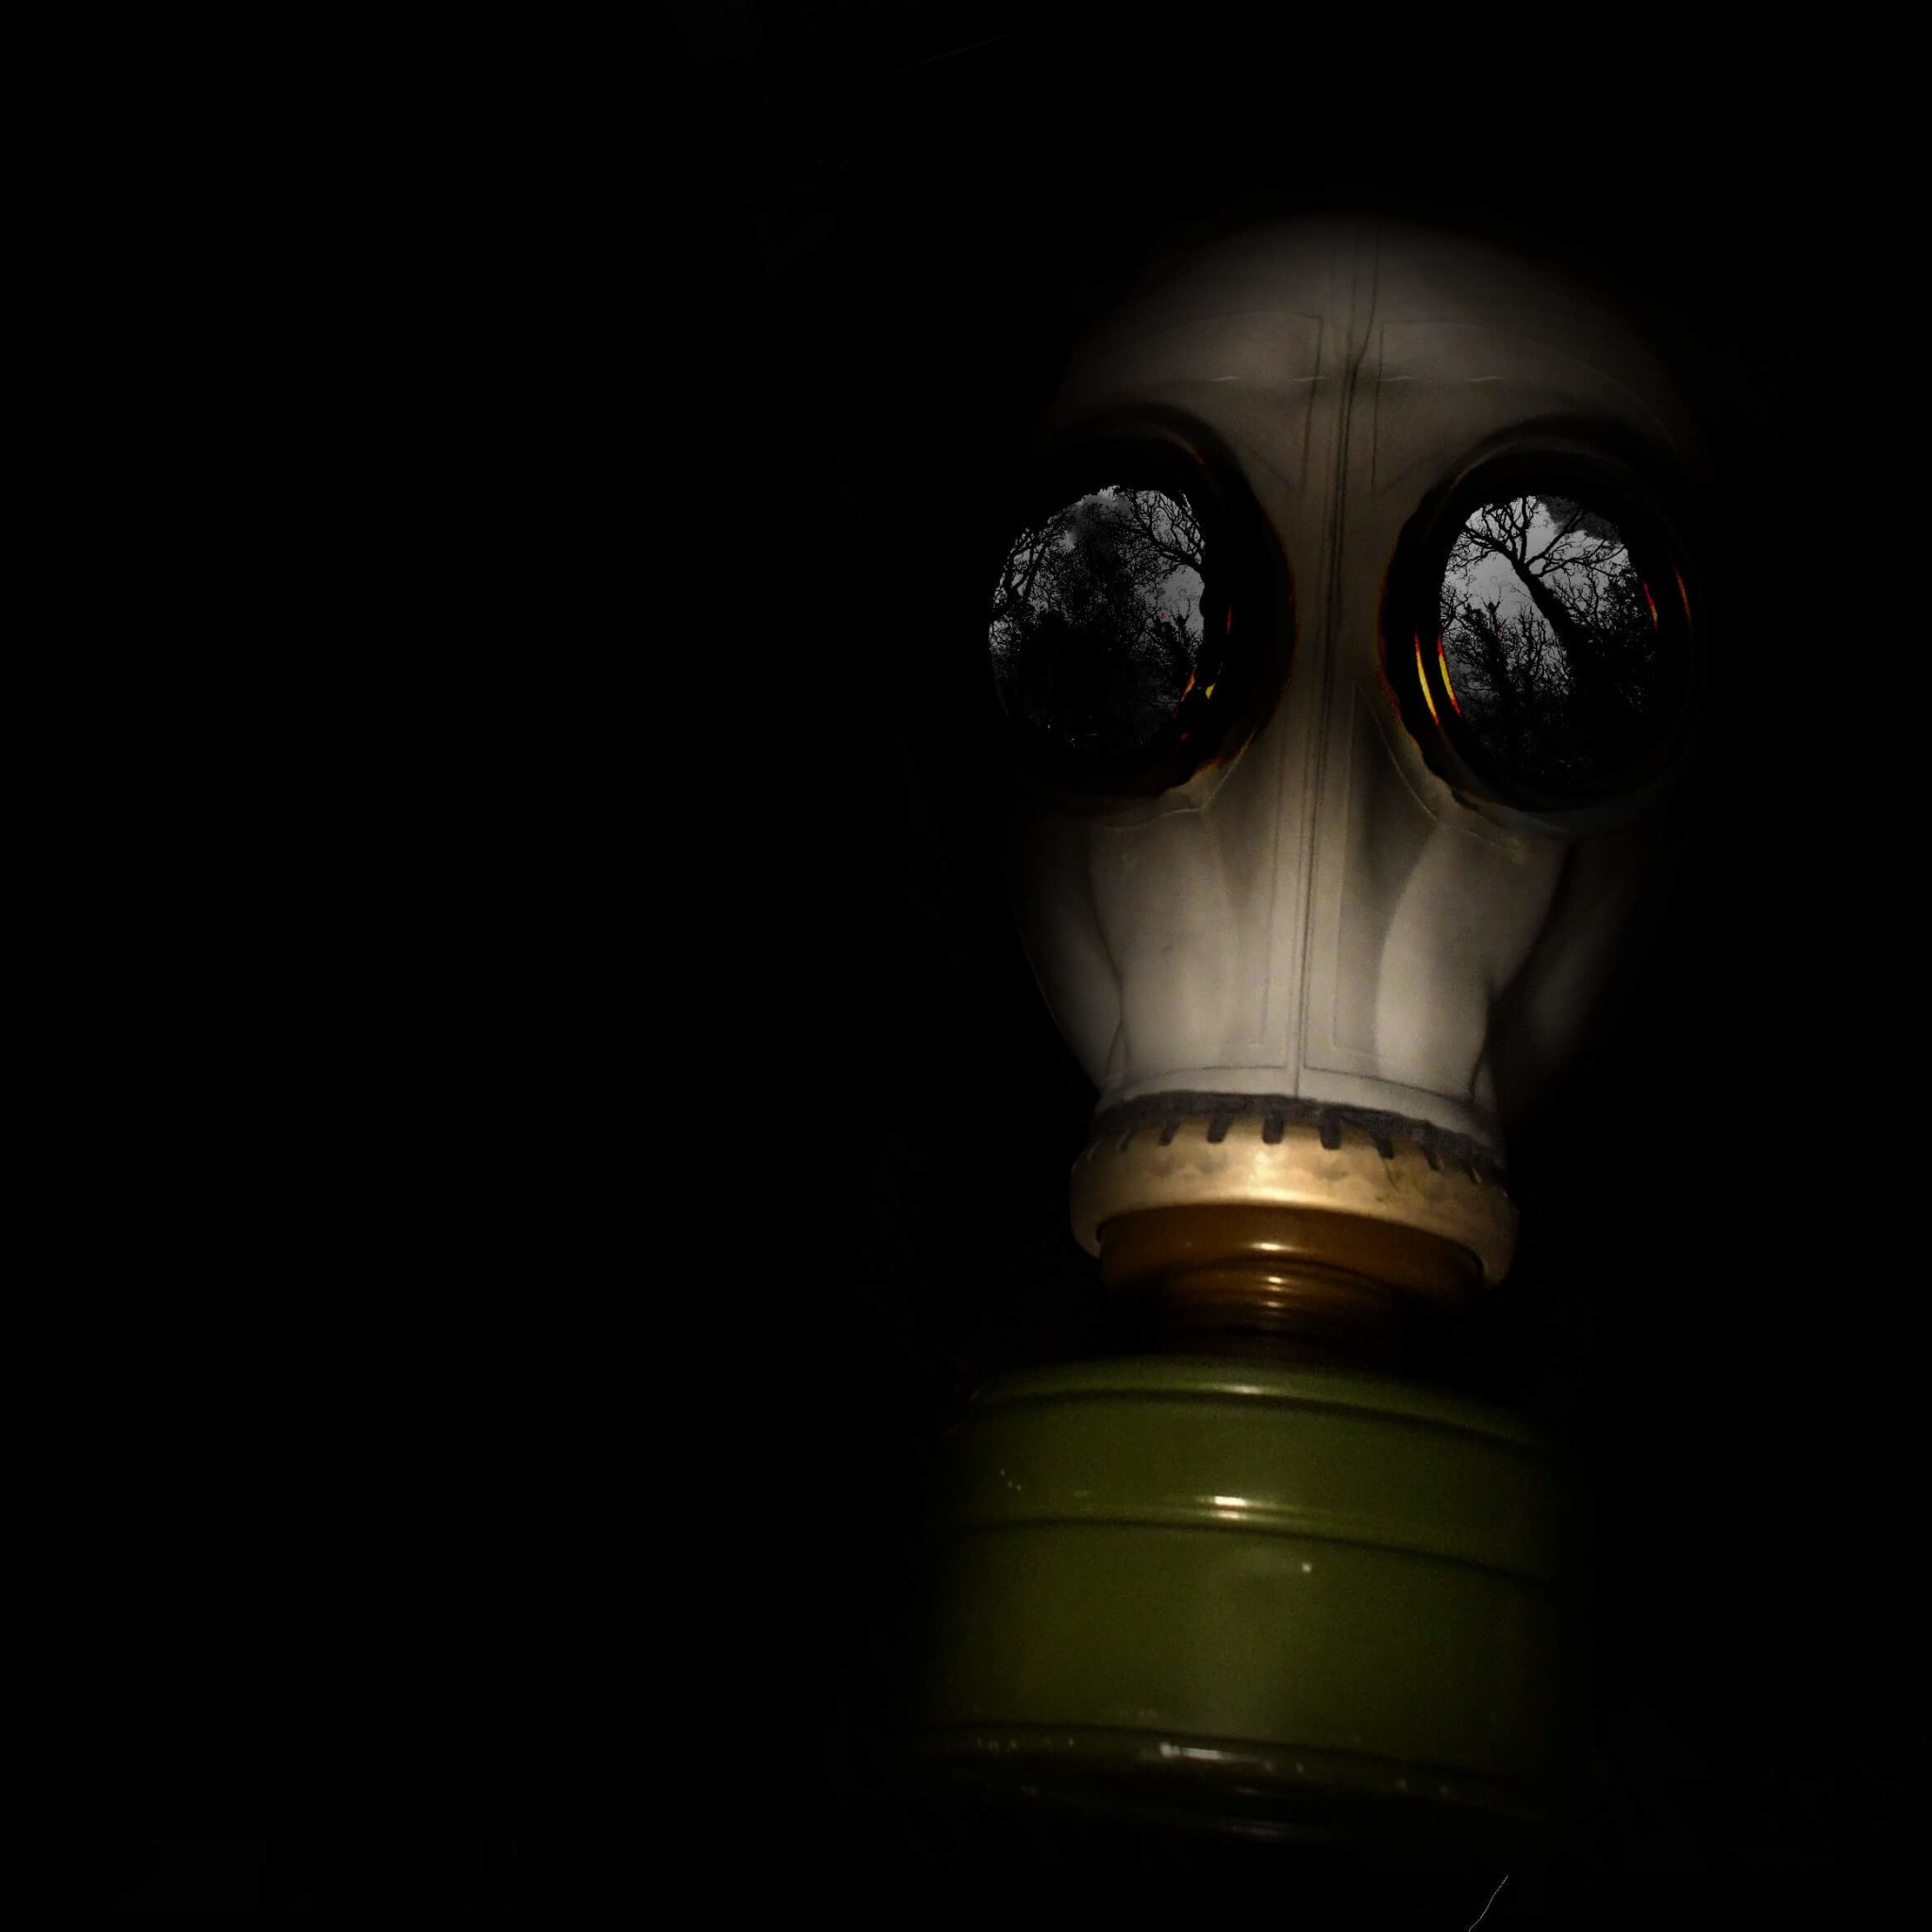 WWII Gas Mask Wallpaper for Google Nexus 9